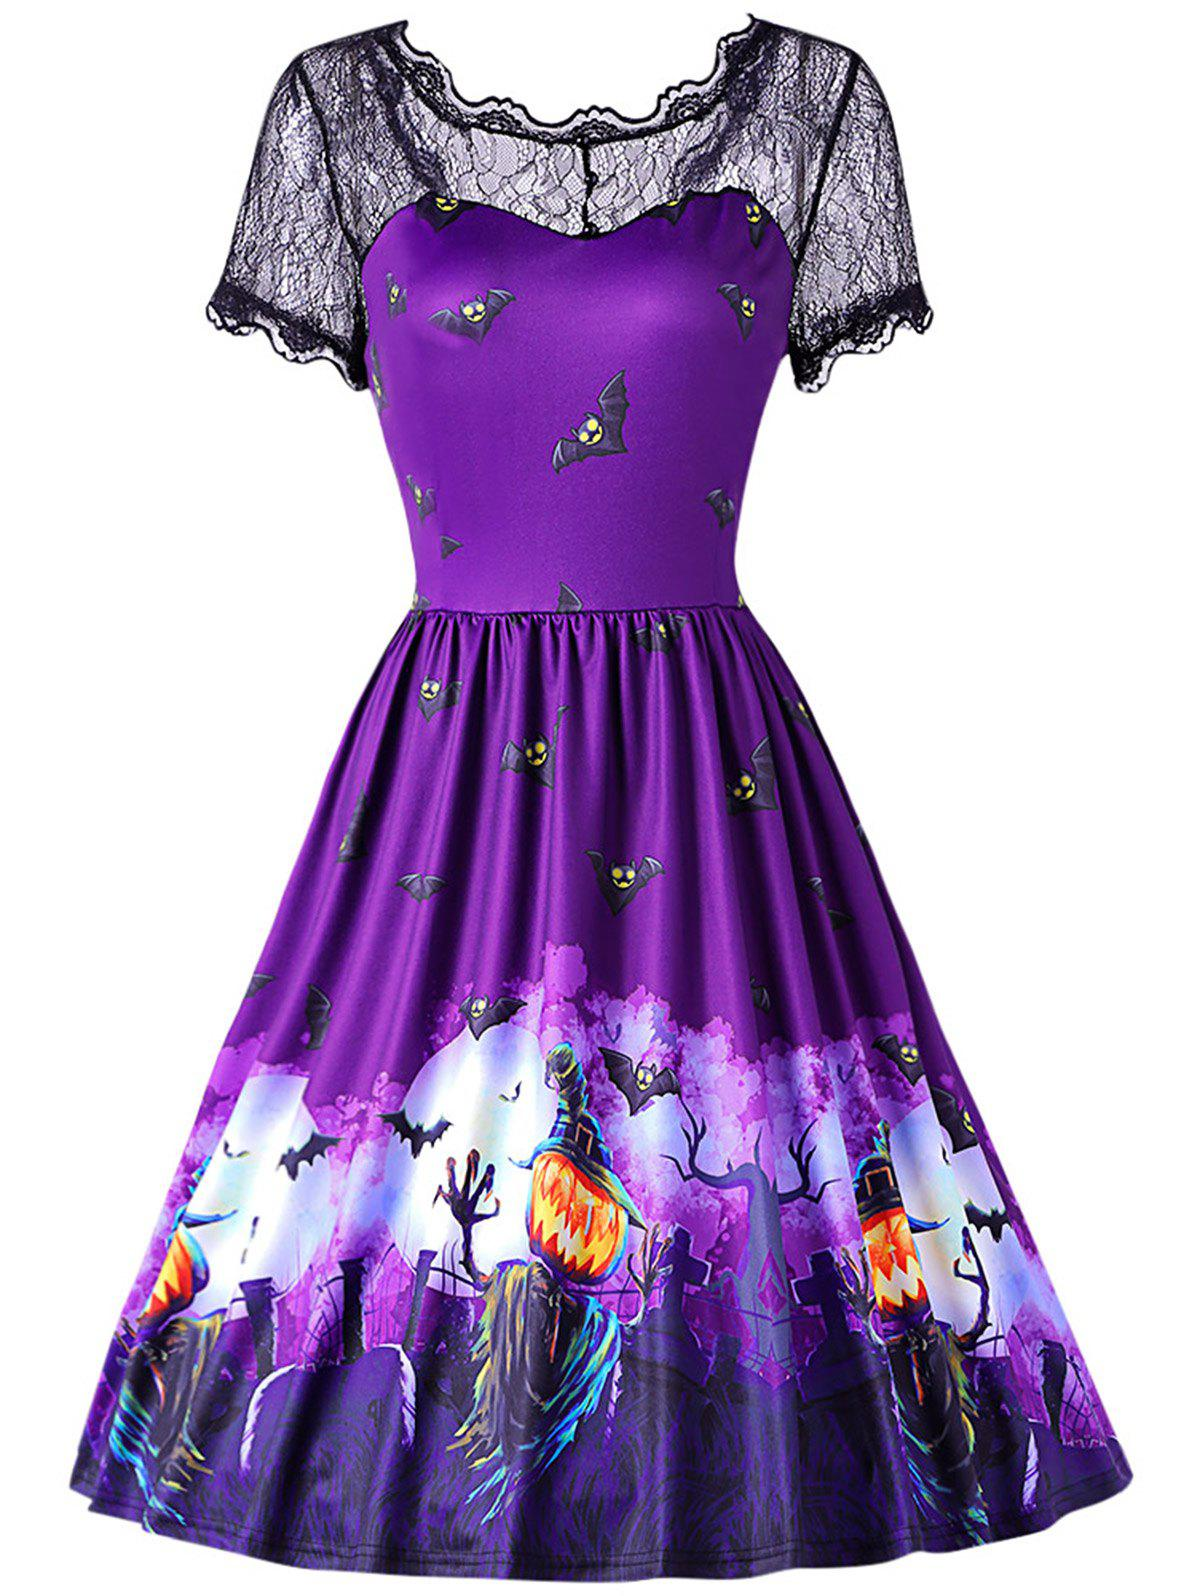 57e2bf1fa5a 35% OFF  Round Collar Short Sleeve Spliced Lace Print Halloween ...